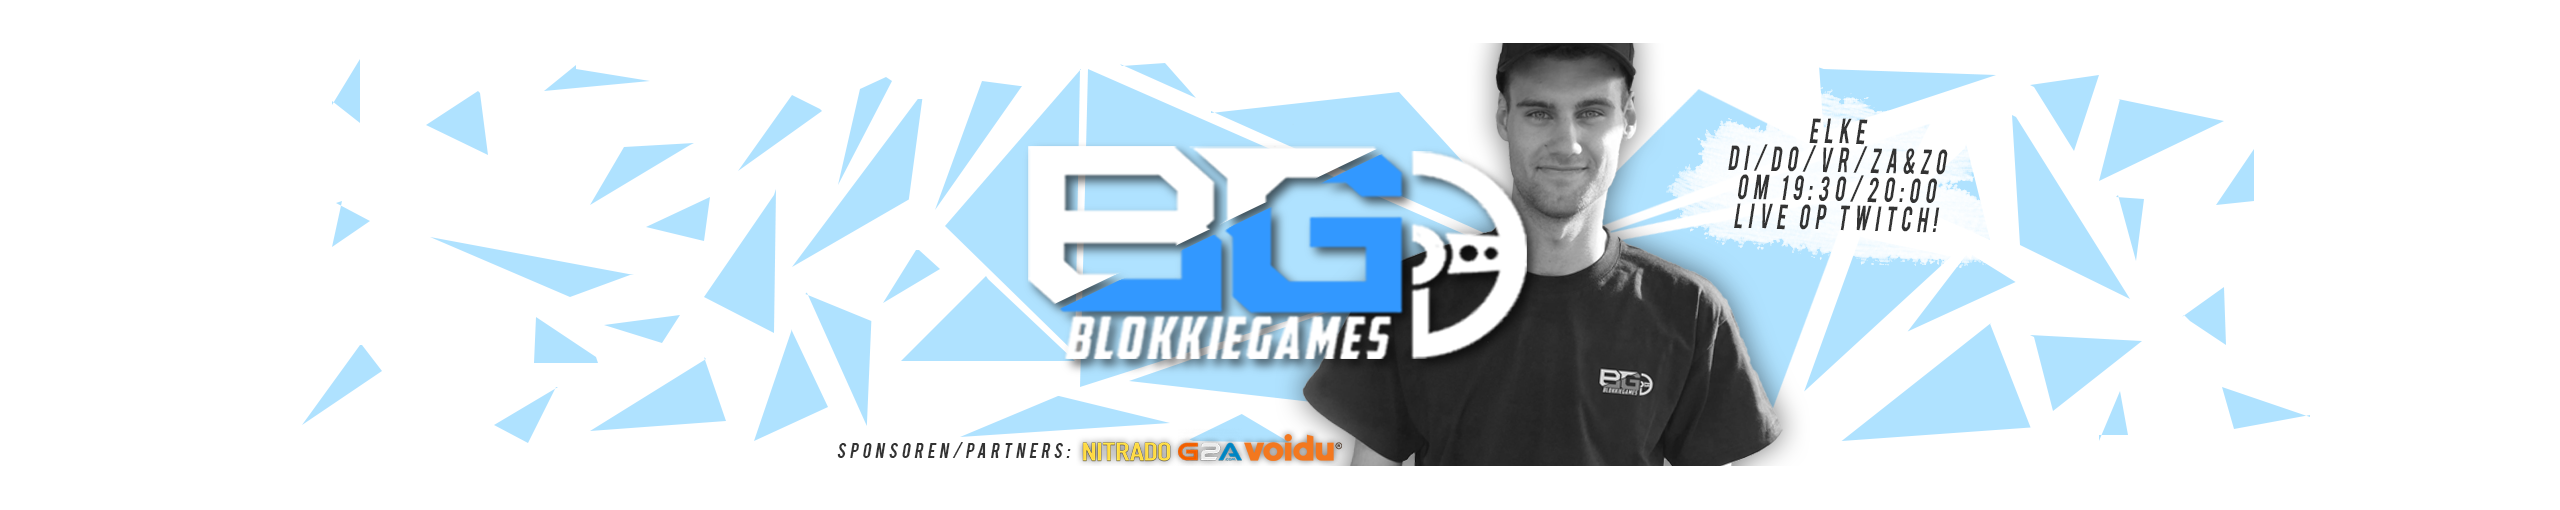 BlokkieGames Website